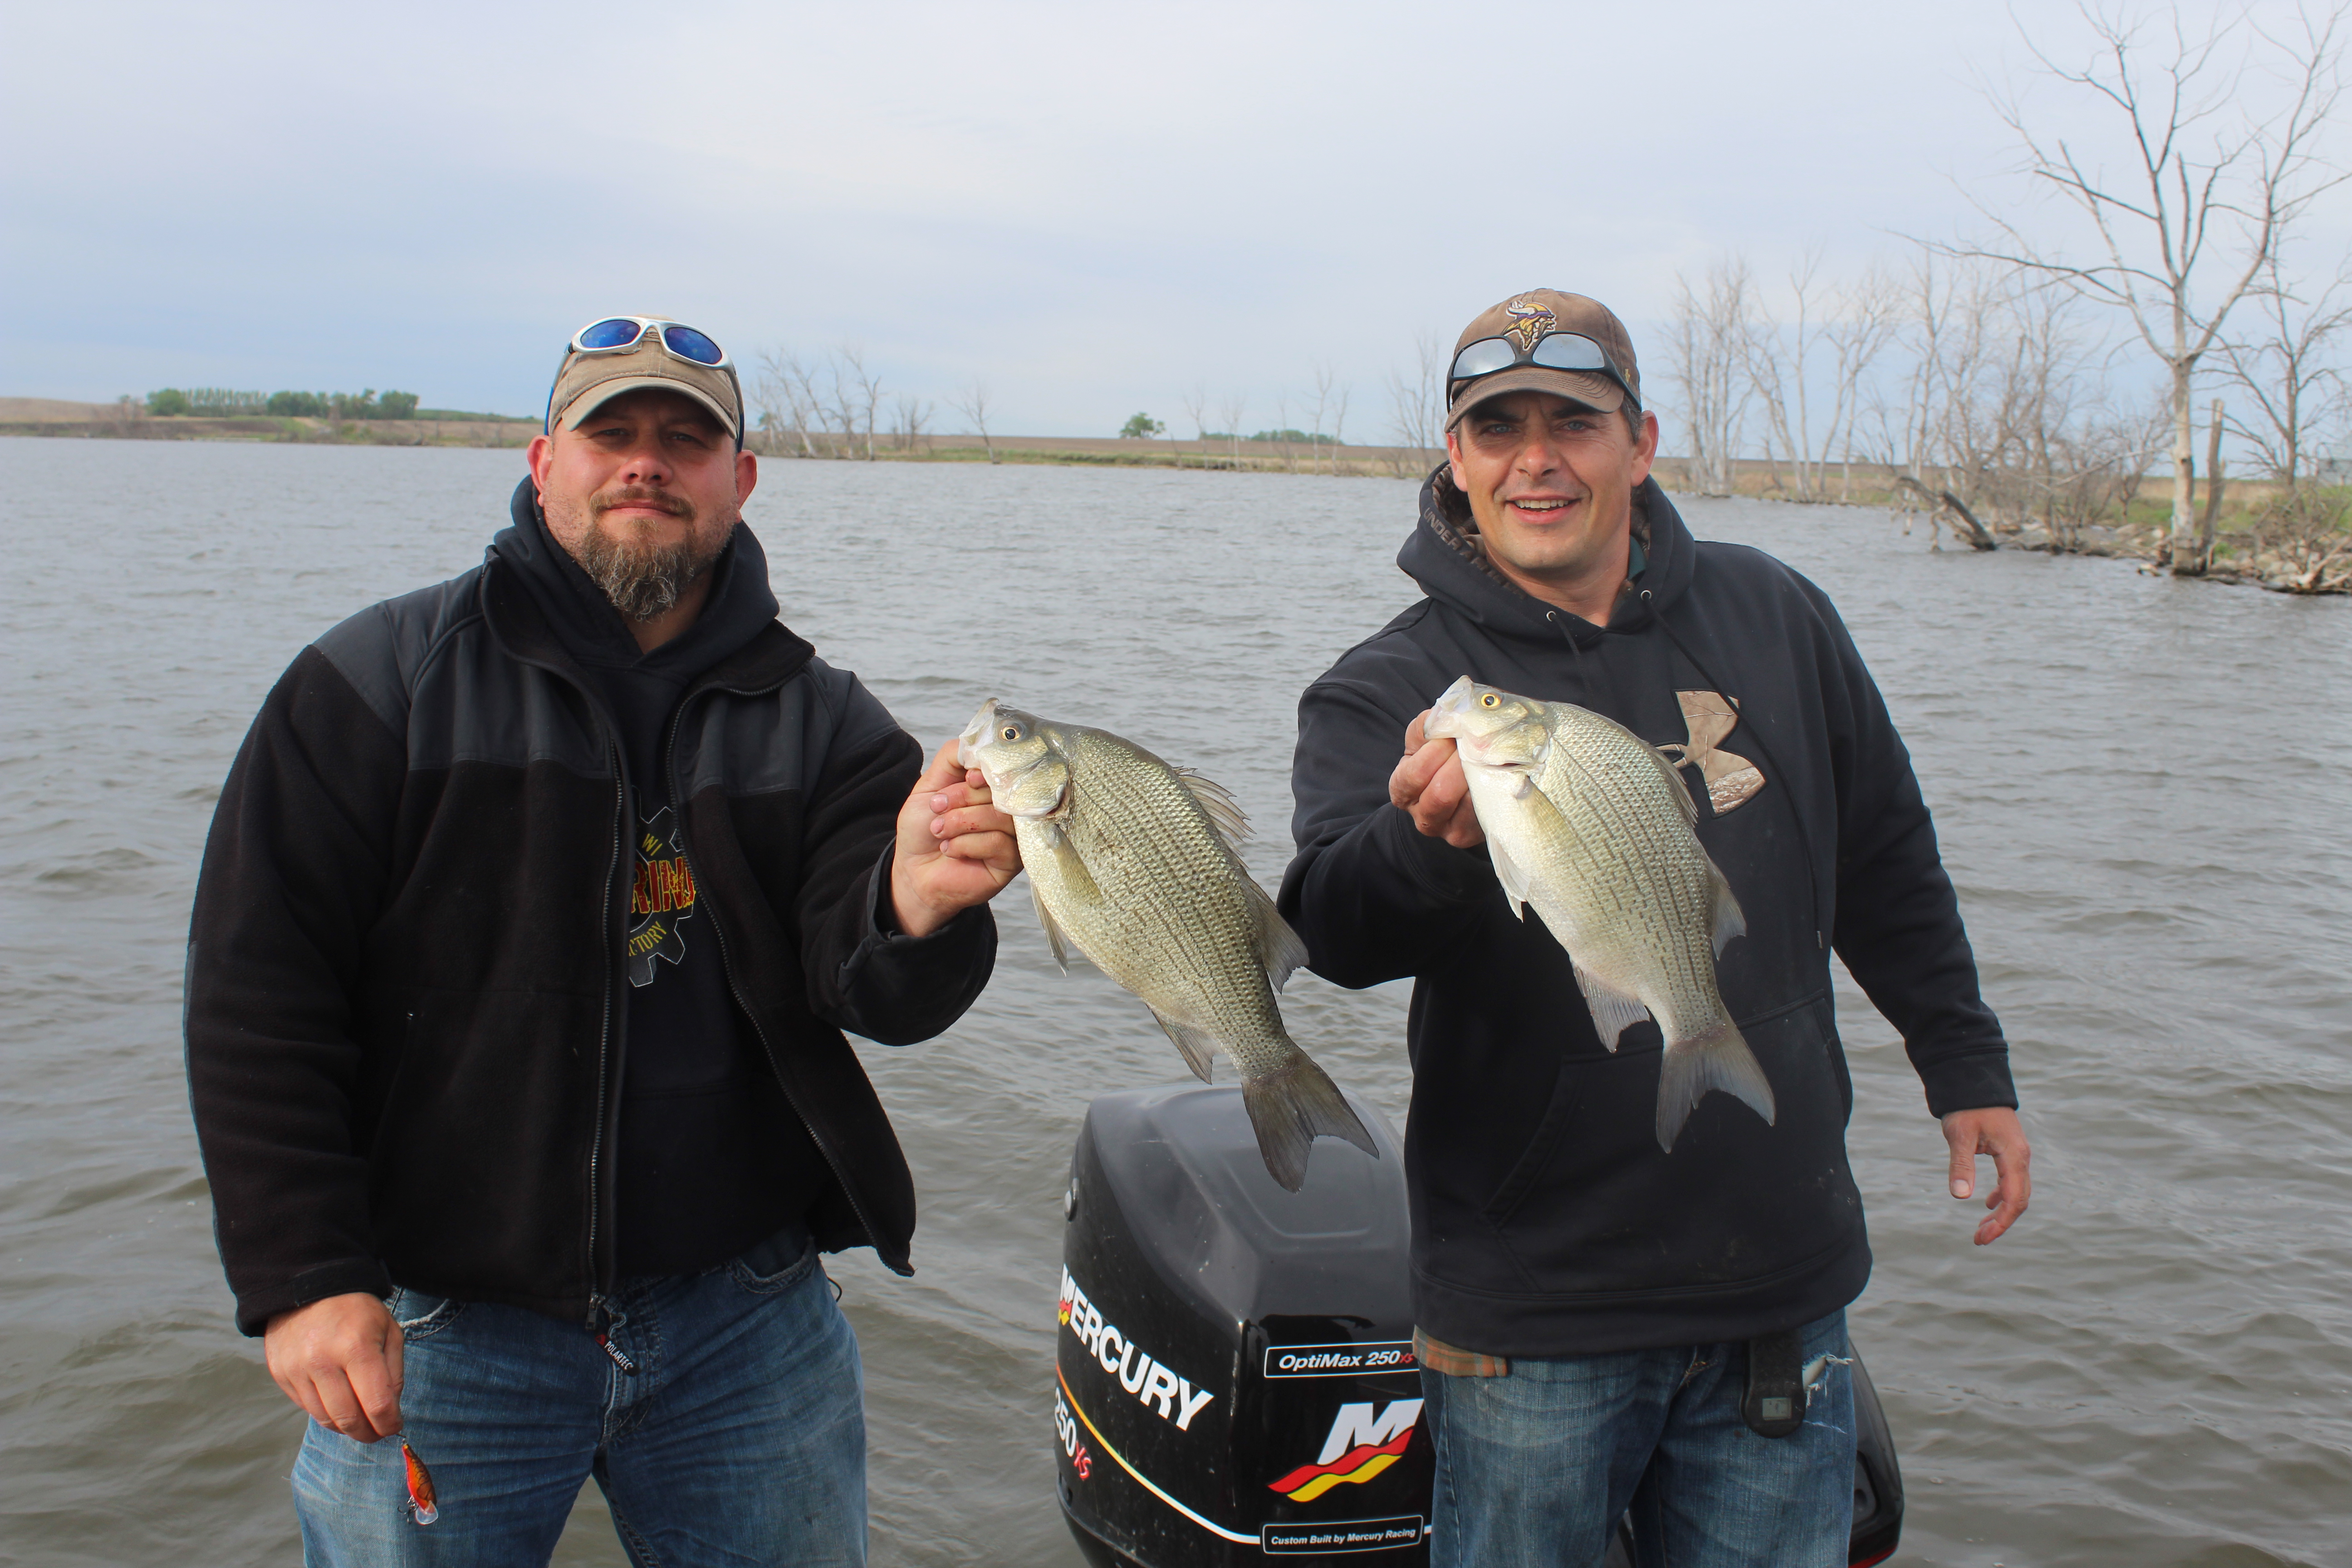 Devils lake 39 s 39 other 39 fish ole mr whitey devils lake for Devils lake fishing report